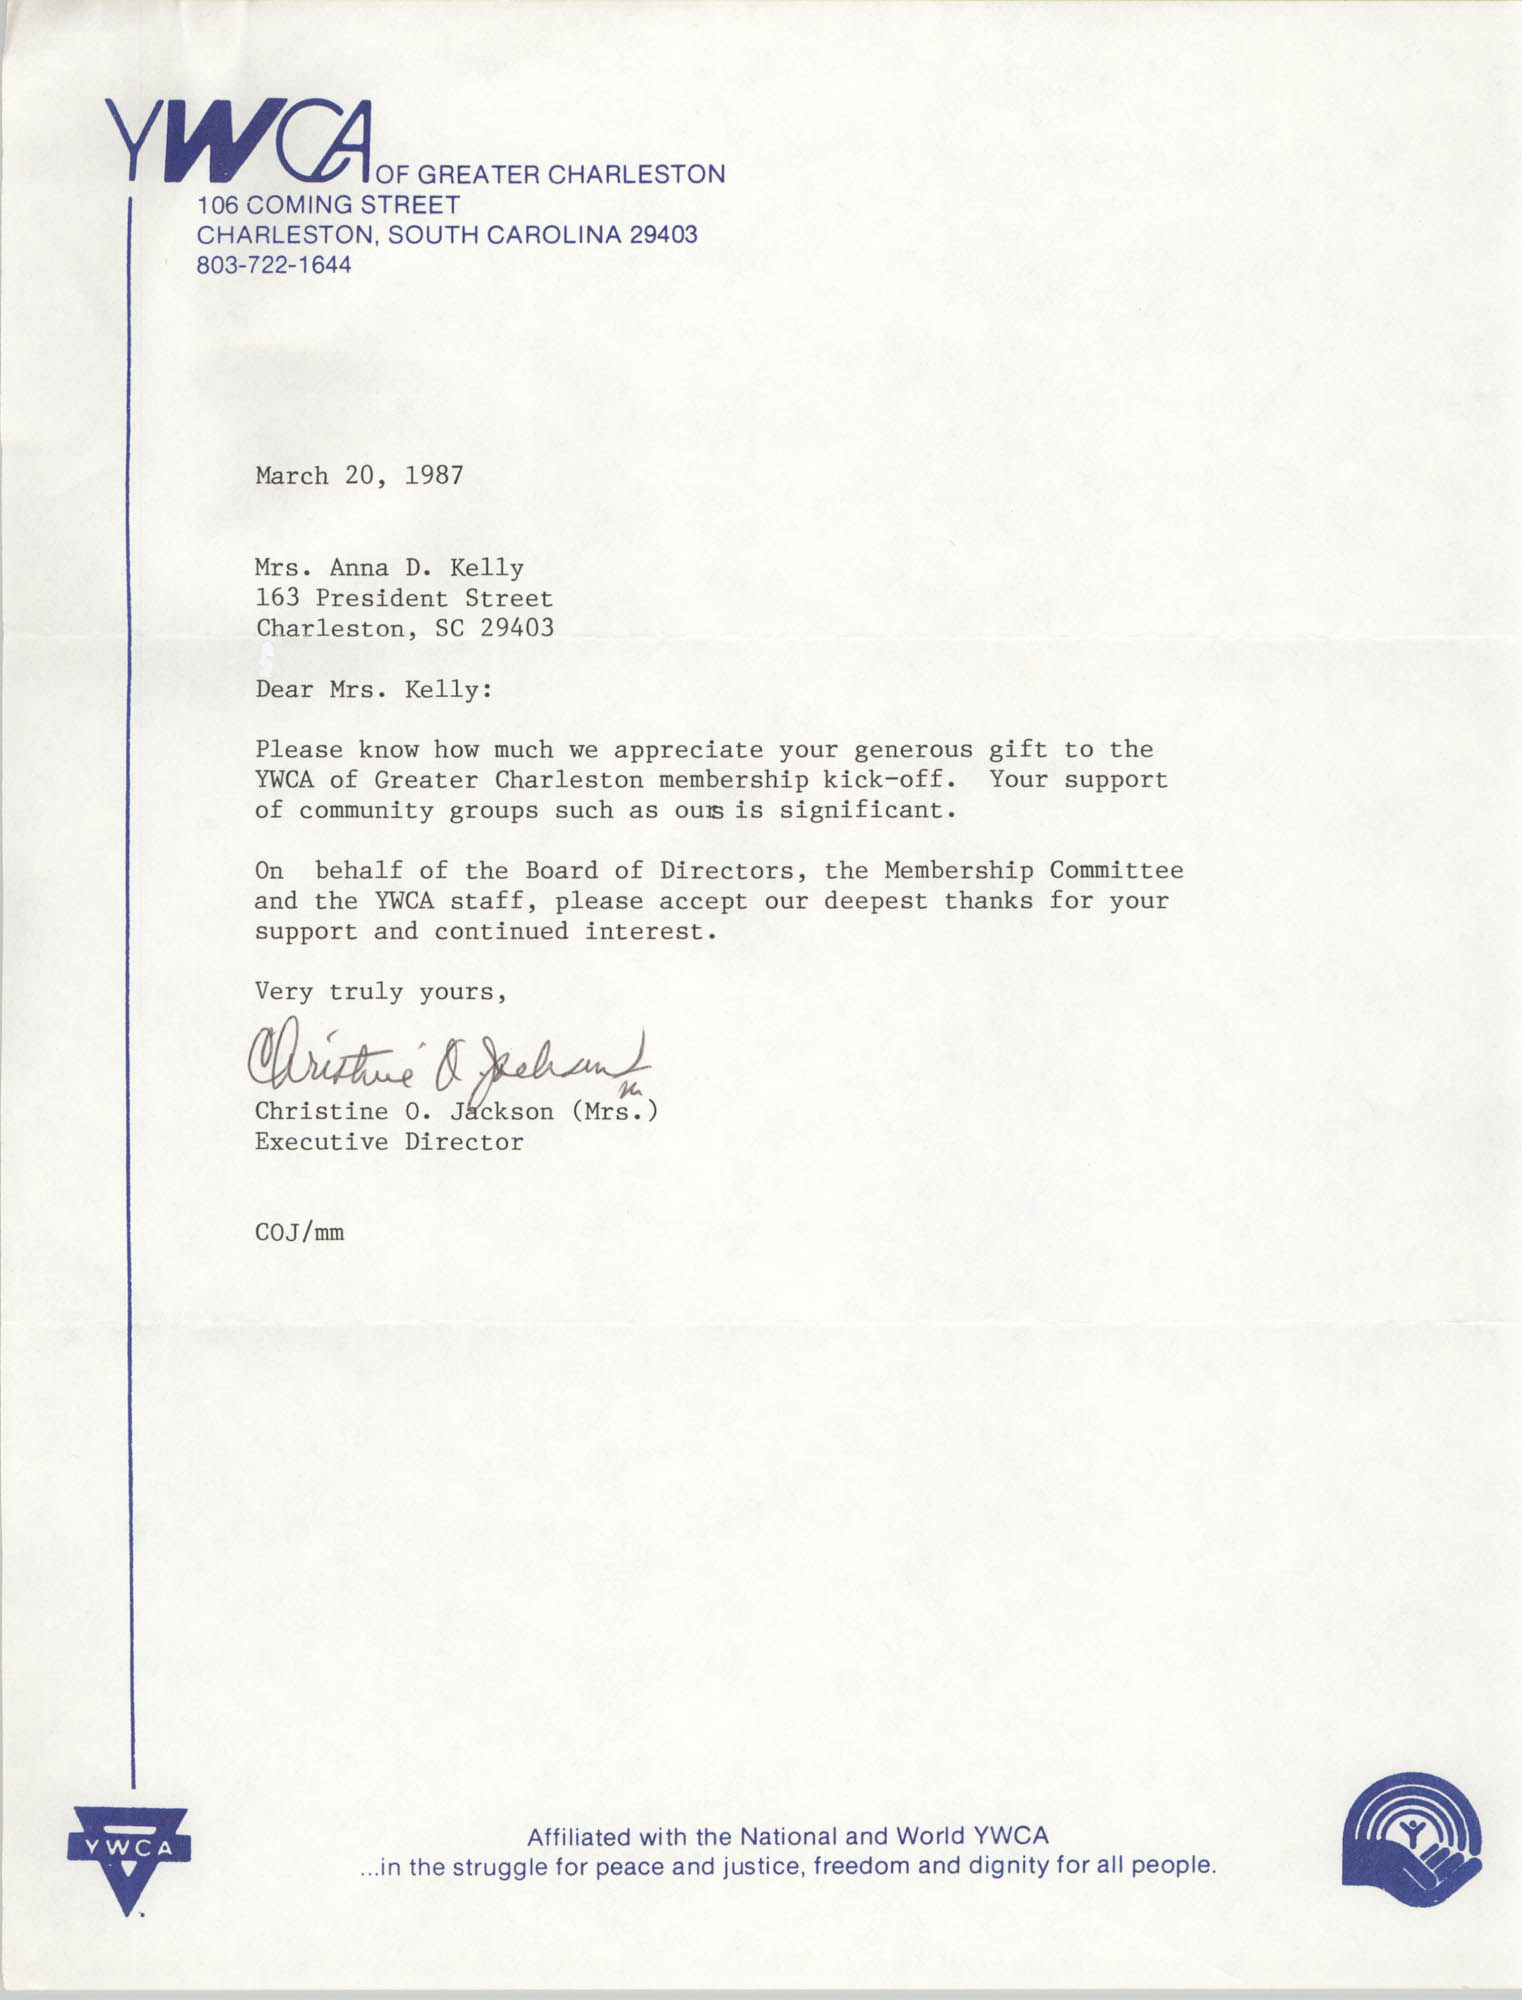 Letter from Christine O. Jackson to Anna D. Kelly, March 20, 1987